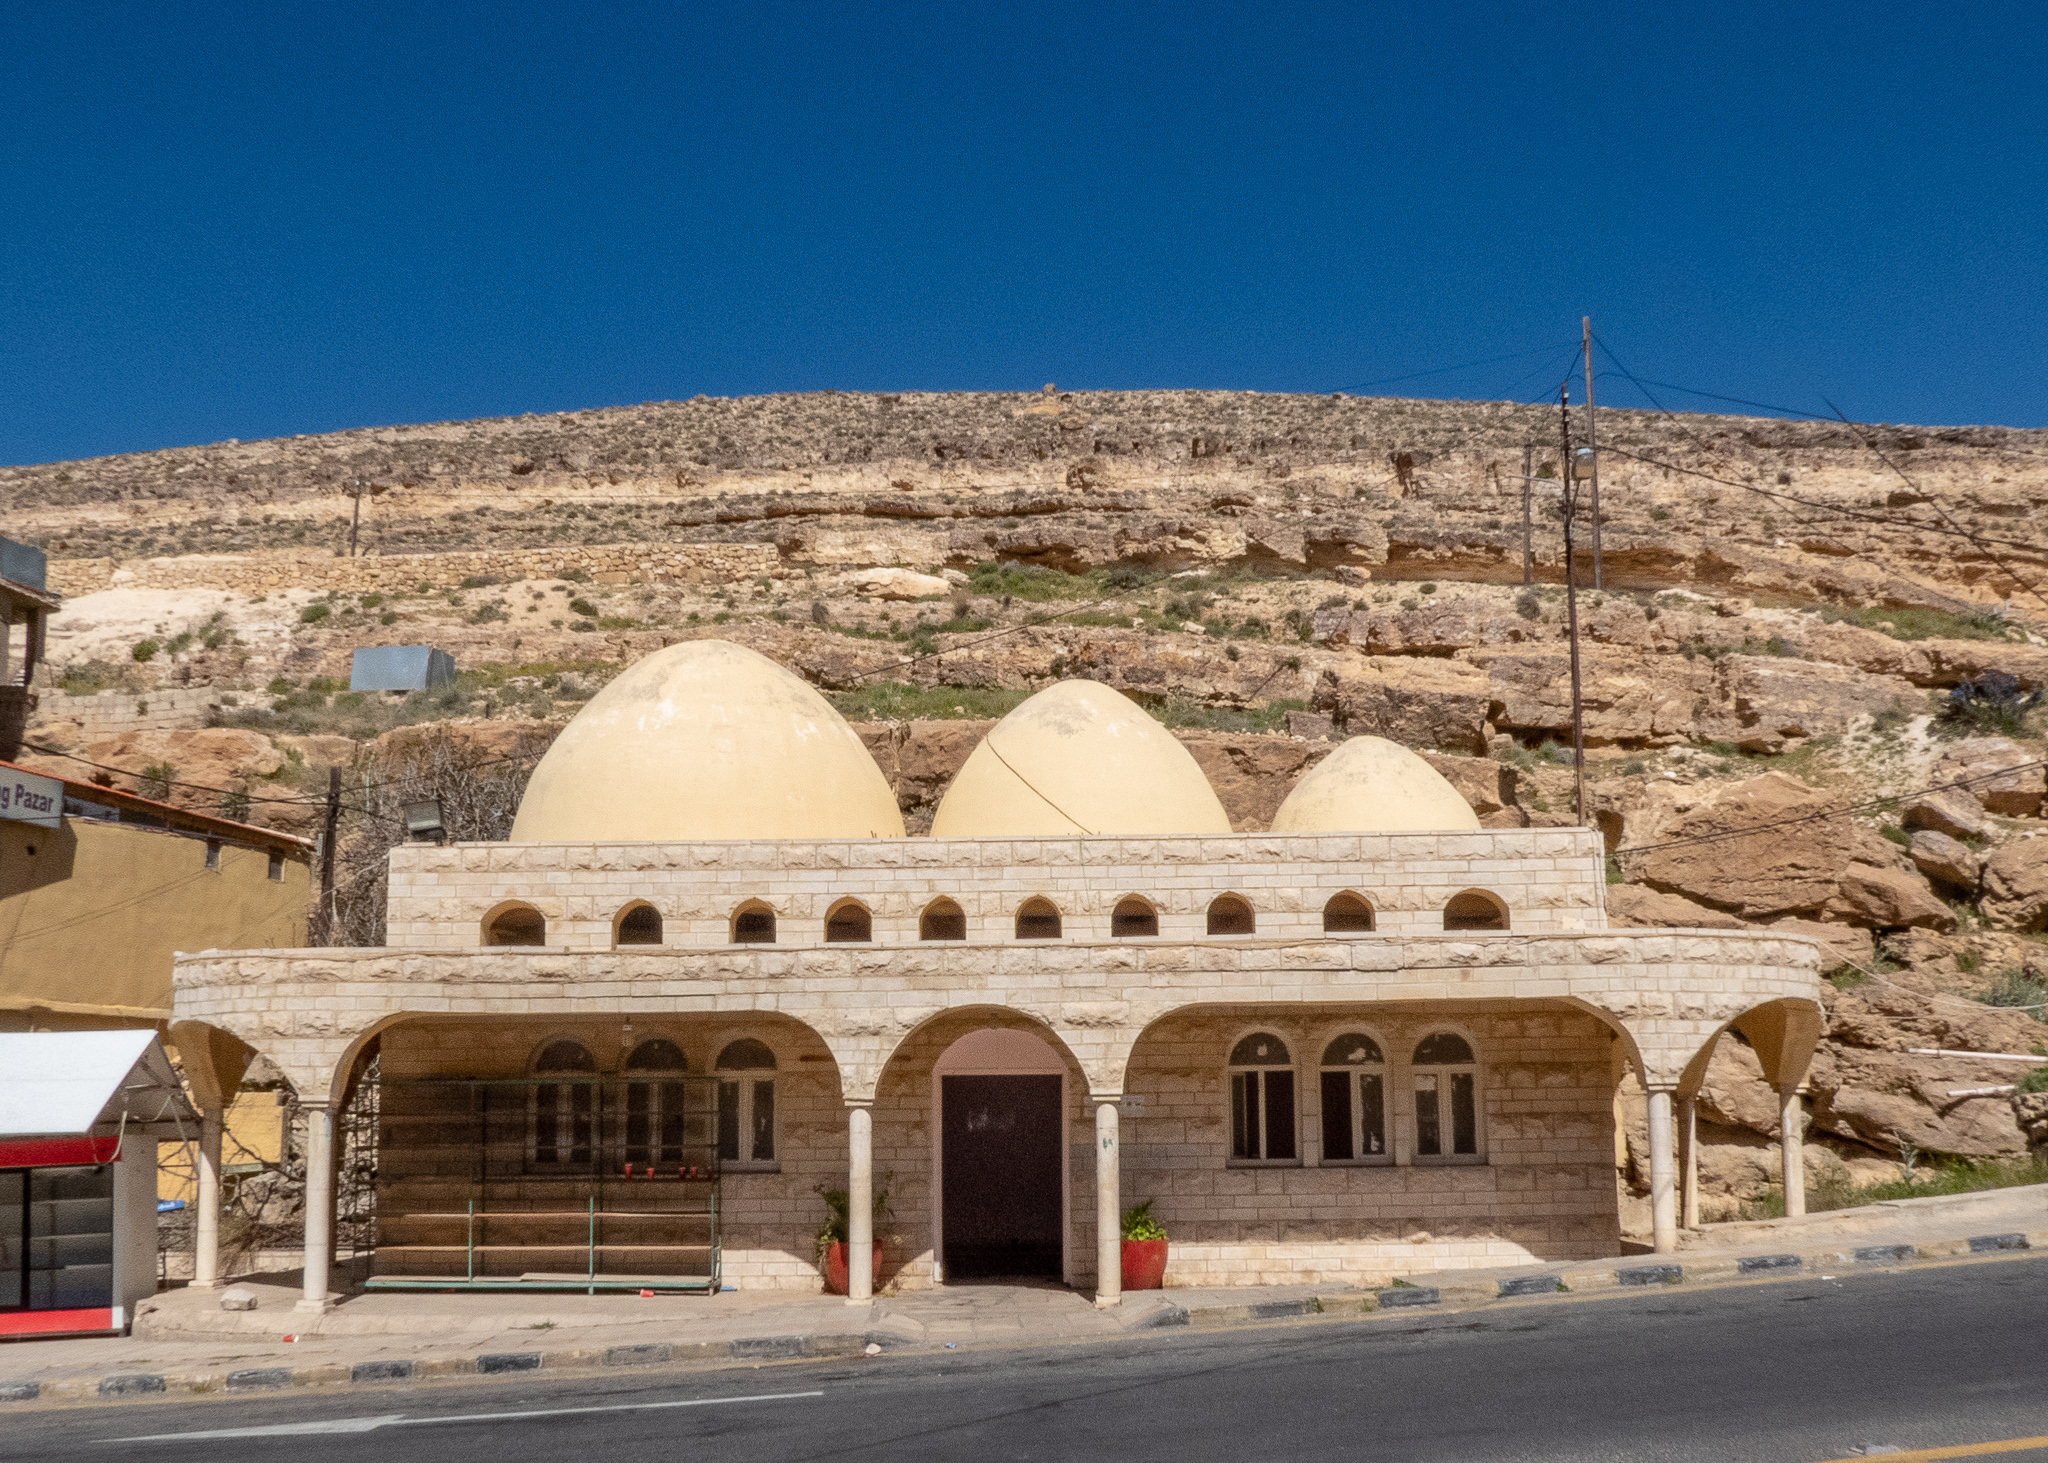 The unique three domed housing structure makes it reasonably easy to find Mousa's Spring